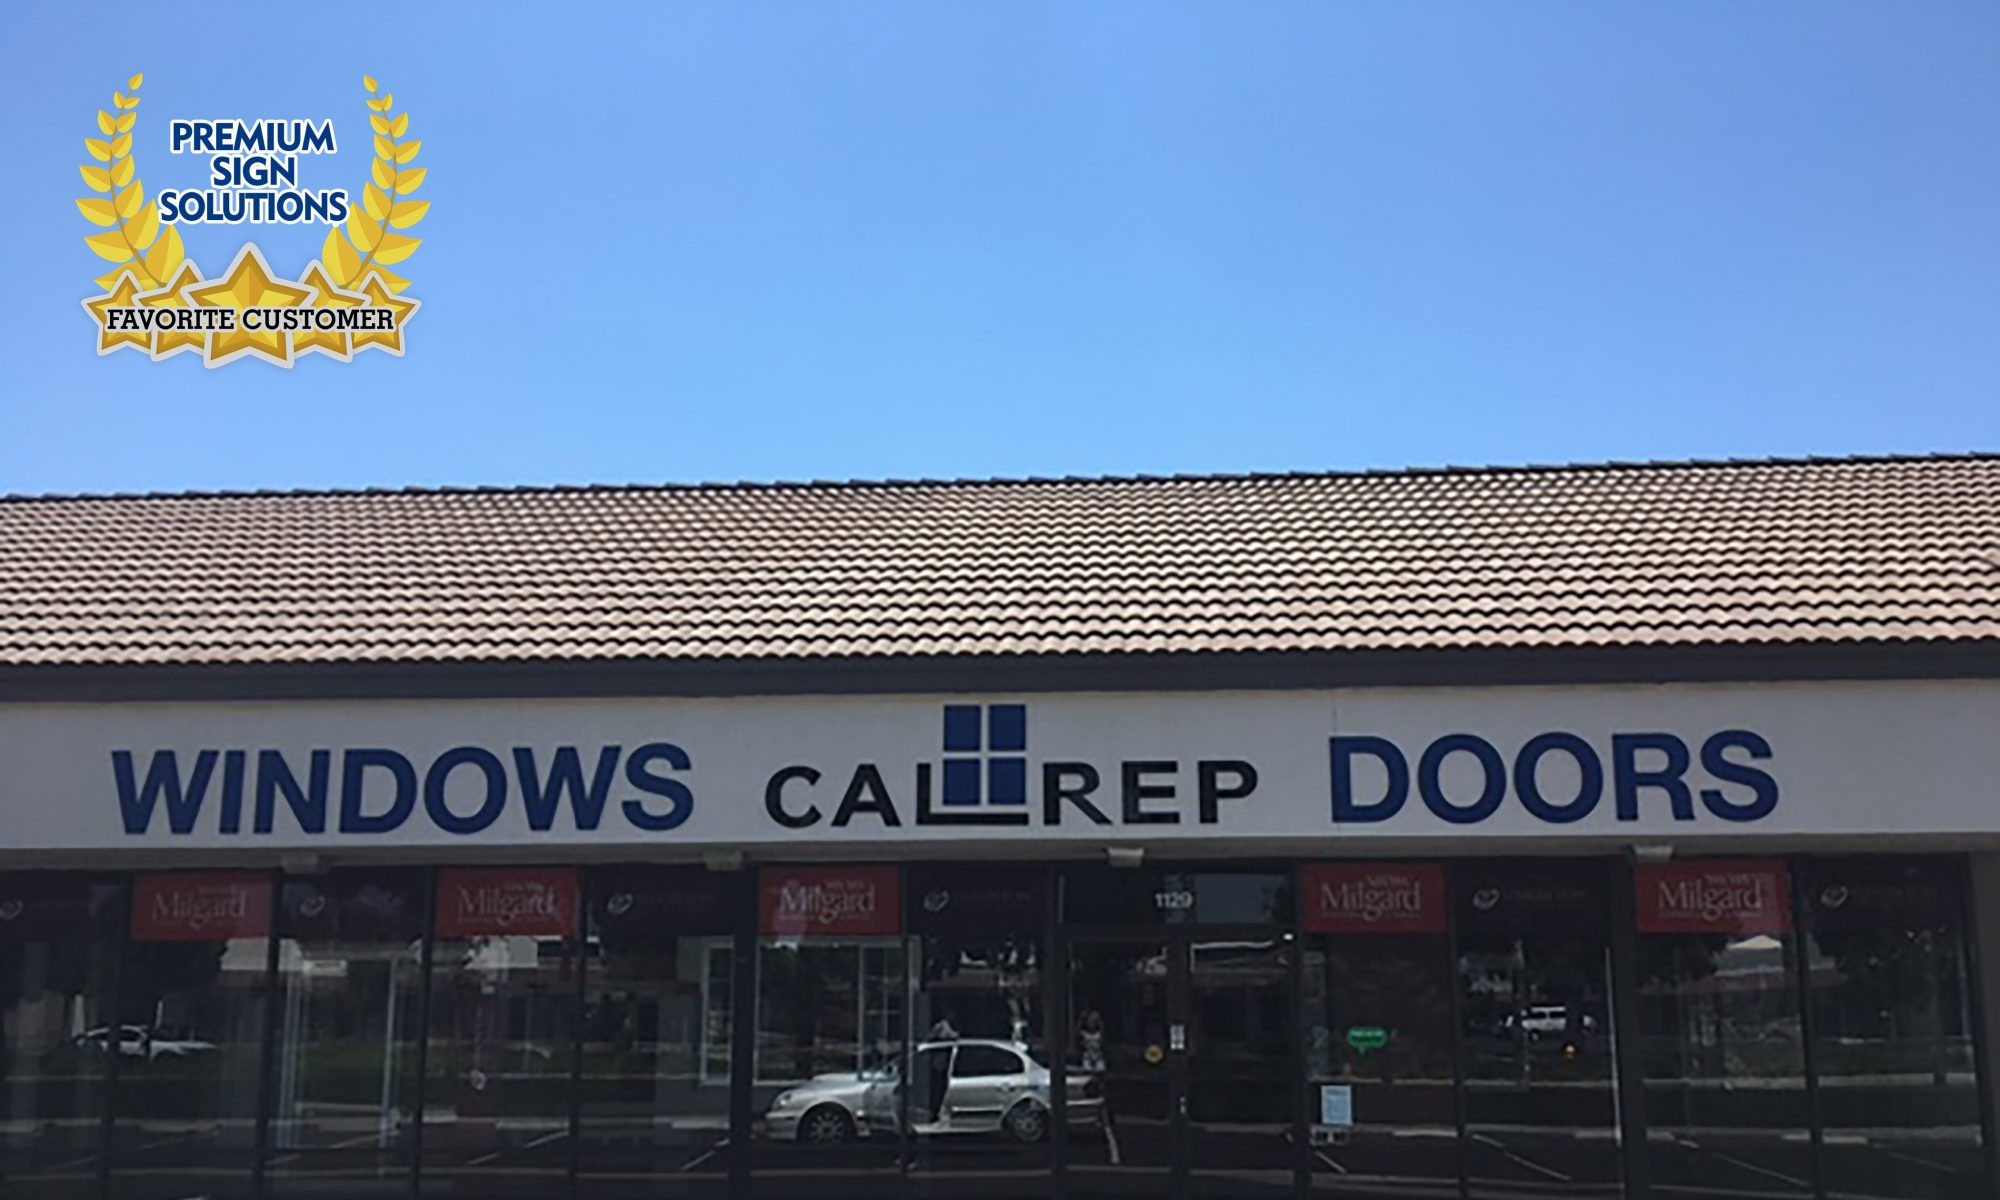 Photo: California Replacement Windows in Anaheim, Orange County with newly fabricated and installed Exterior Signage by Premium Sign Solutions.